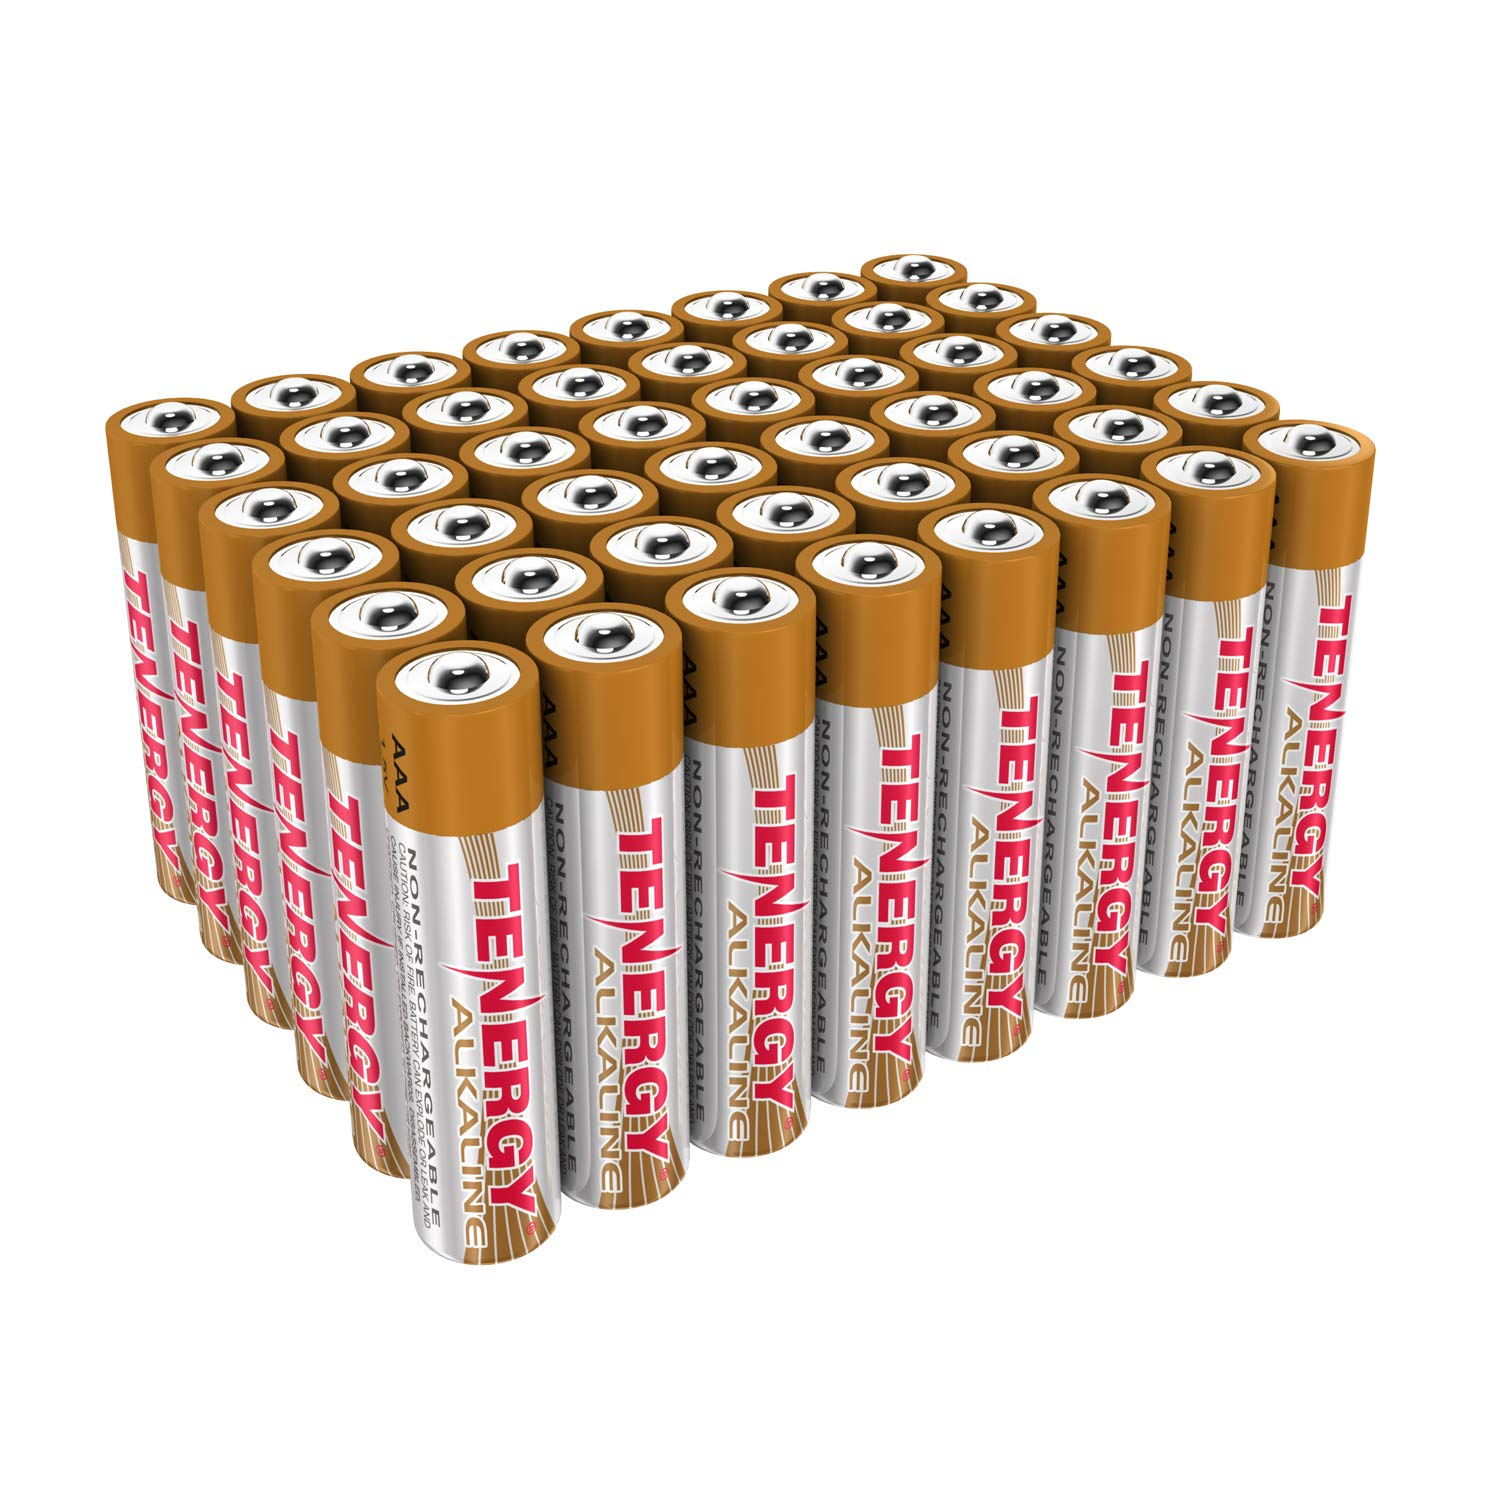 Tenergy 1.5V AAA Alkaline Battery, High Performance AAA Non-Rechargeable Batteries for Clocks, Remotes, Toys & Electronic Devices, Replacement AAA Cell Batteries, 48-Pack